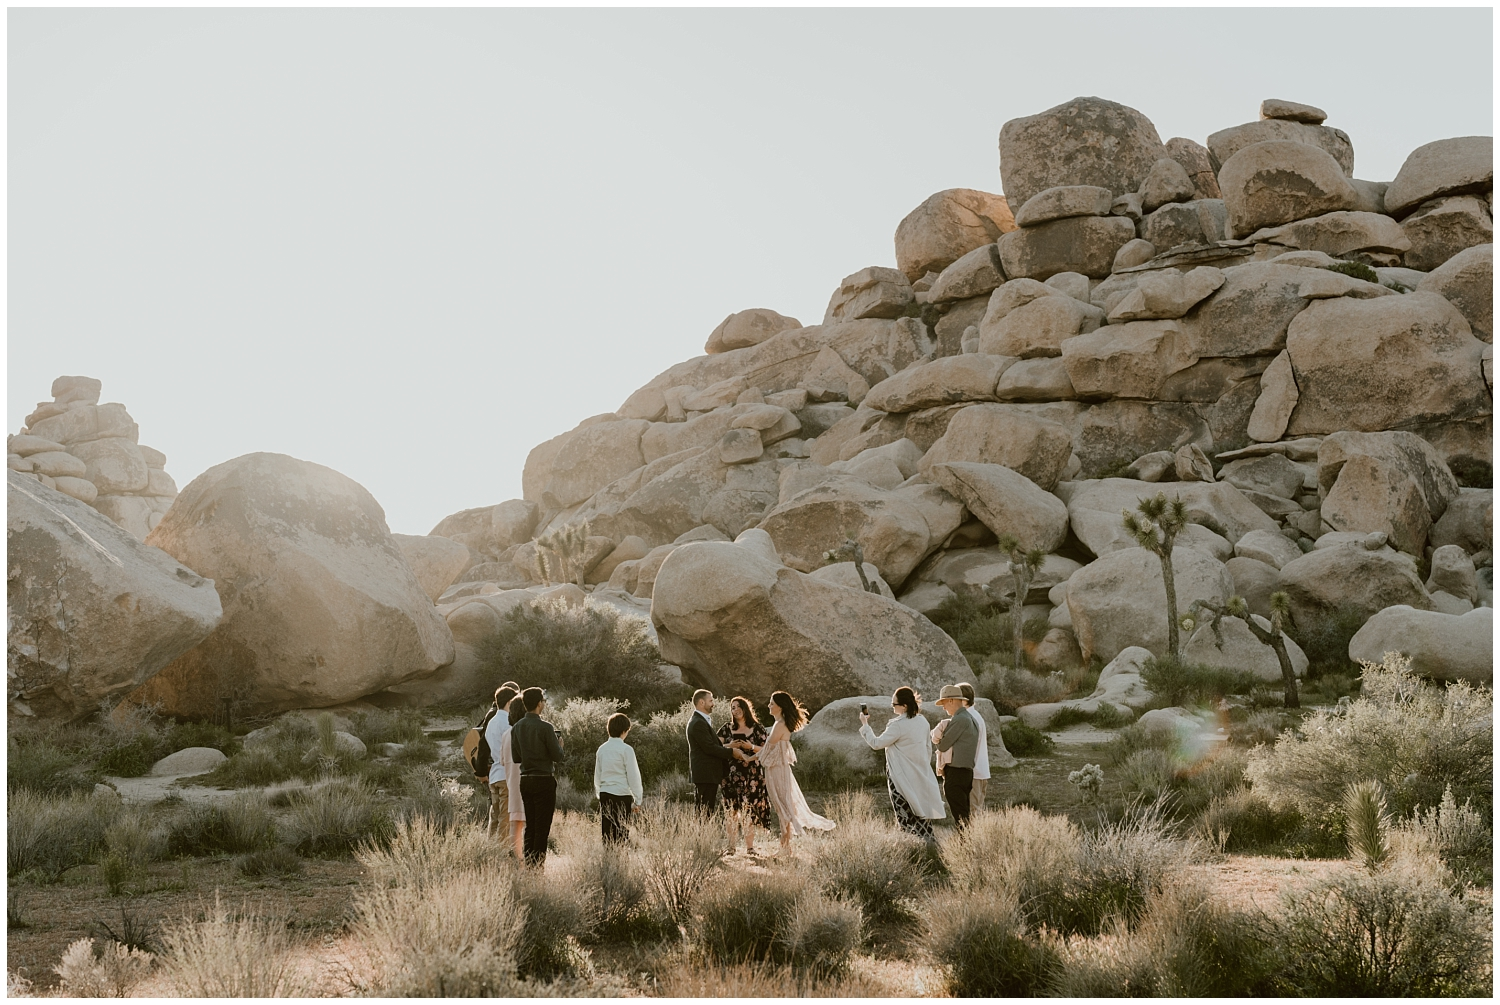 Cap-Rock-Joshua-Tree-Elopement-0037.jpg